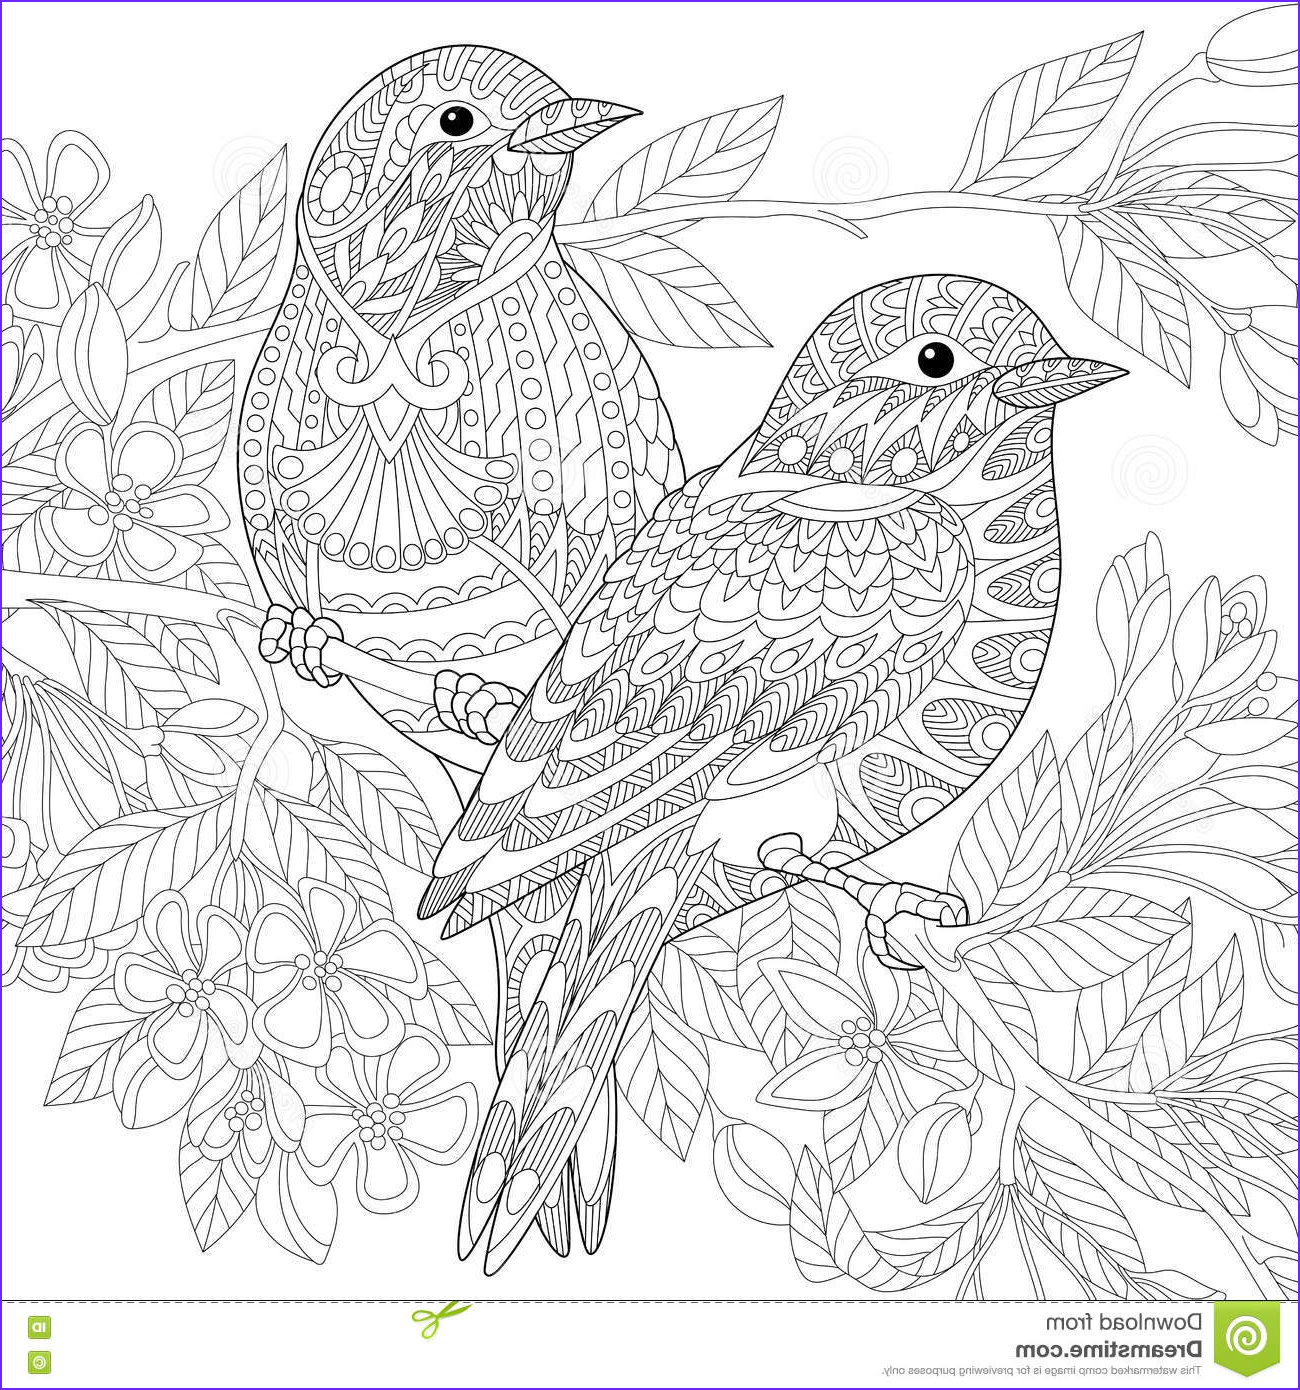 stock illustration zentangle stylized birds two sparrows sitting blooming tree branch freehand sketch adult anti stress coloring book page image